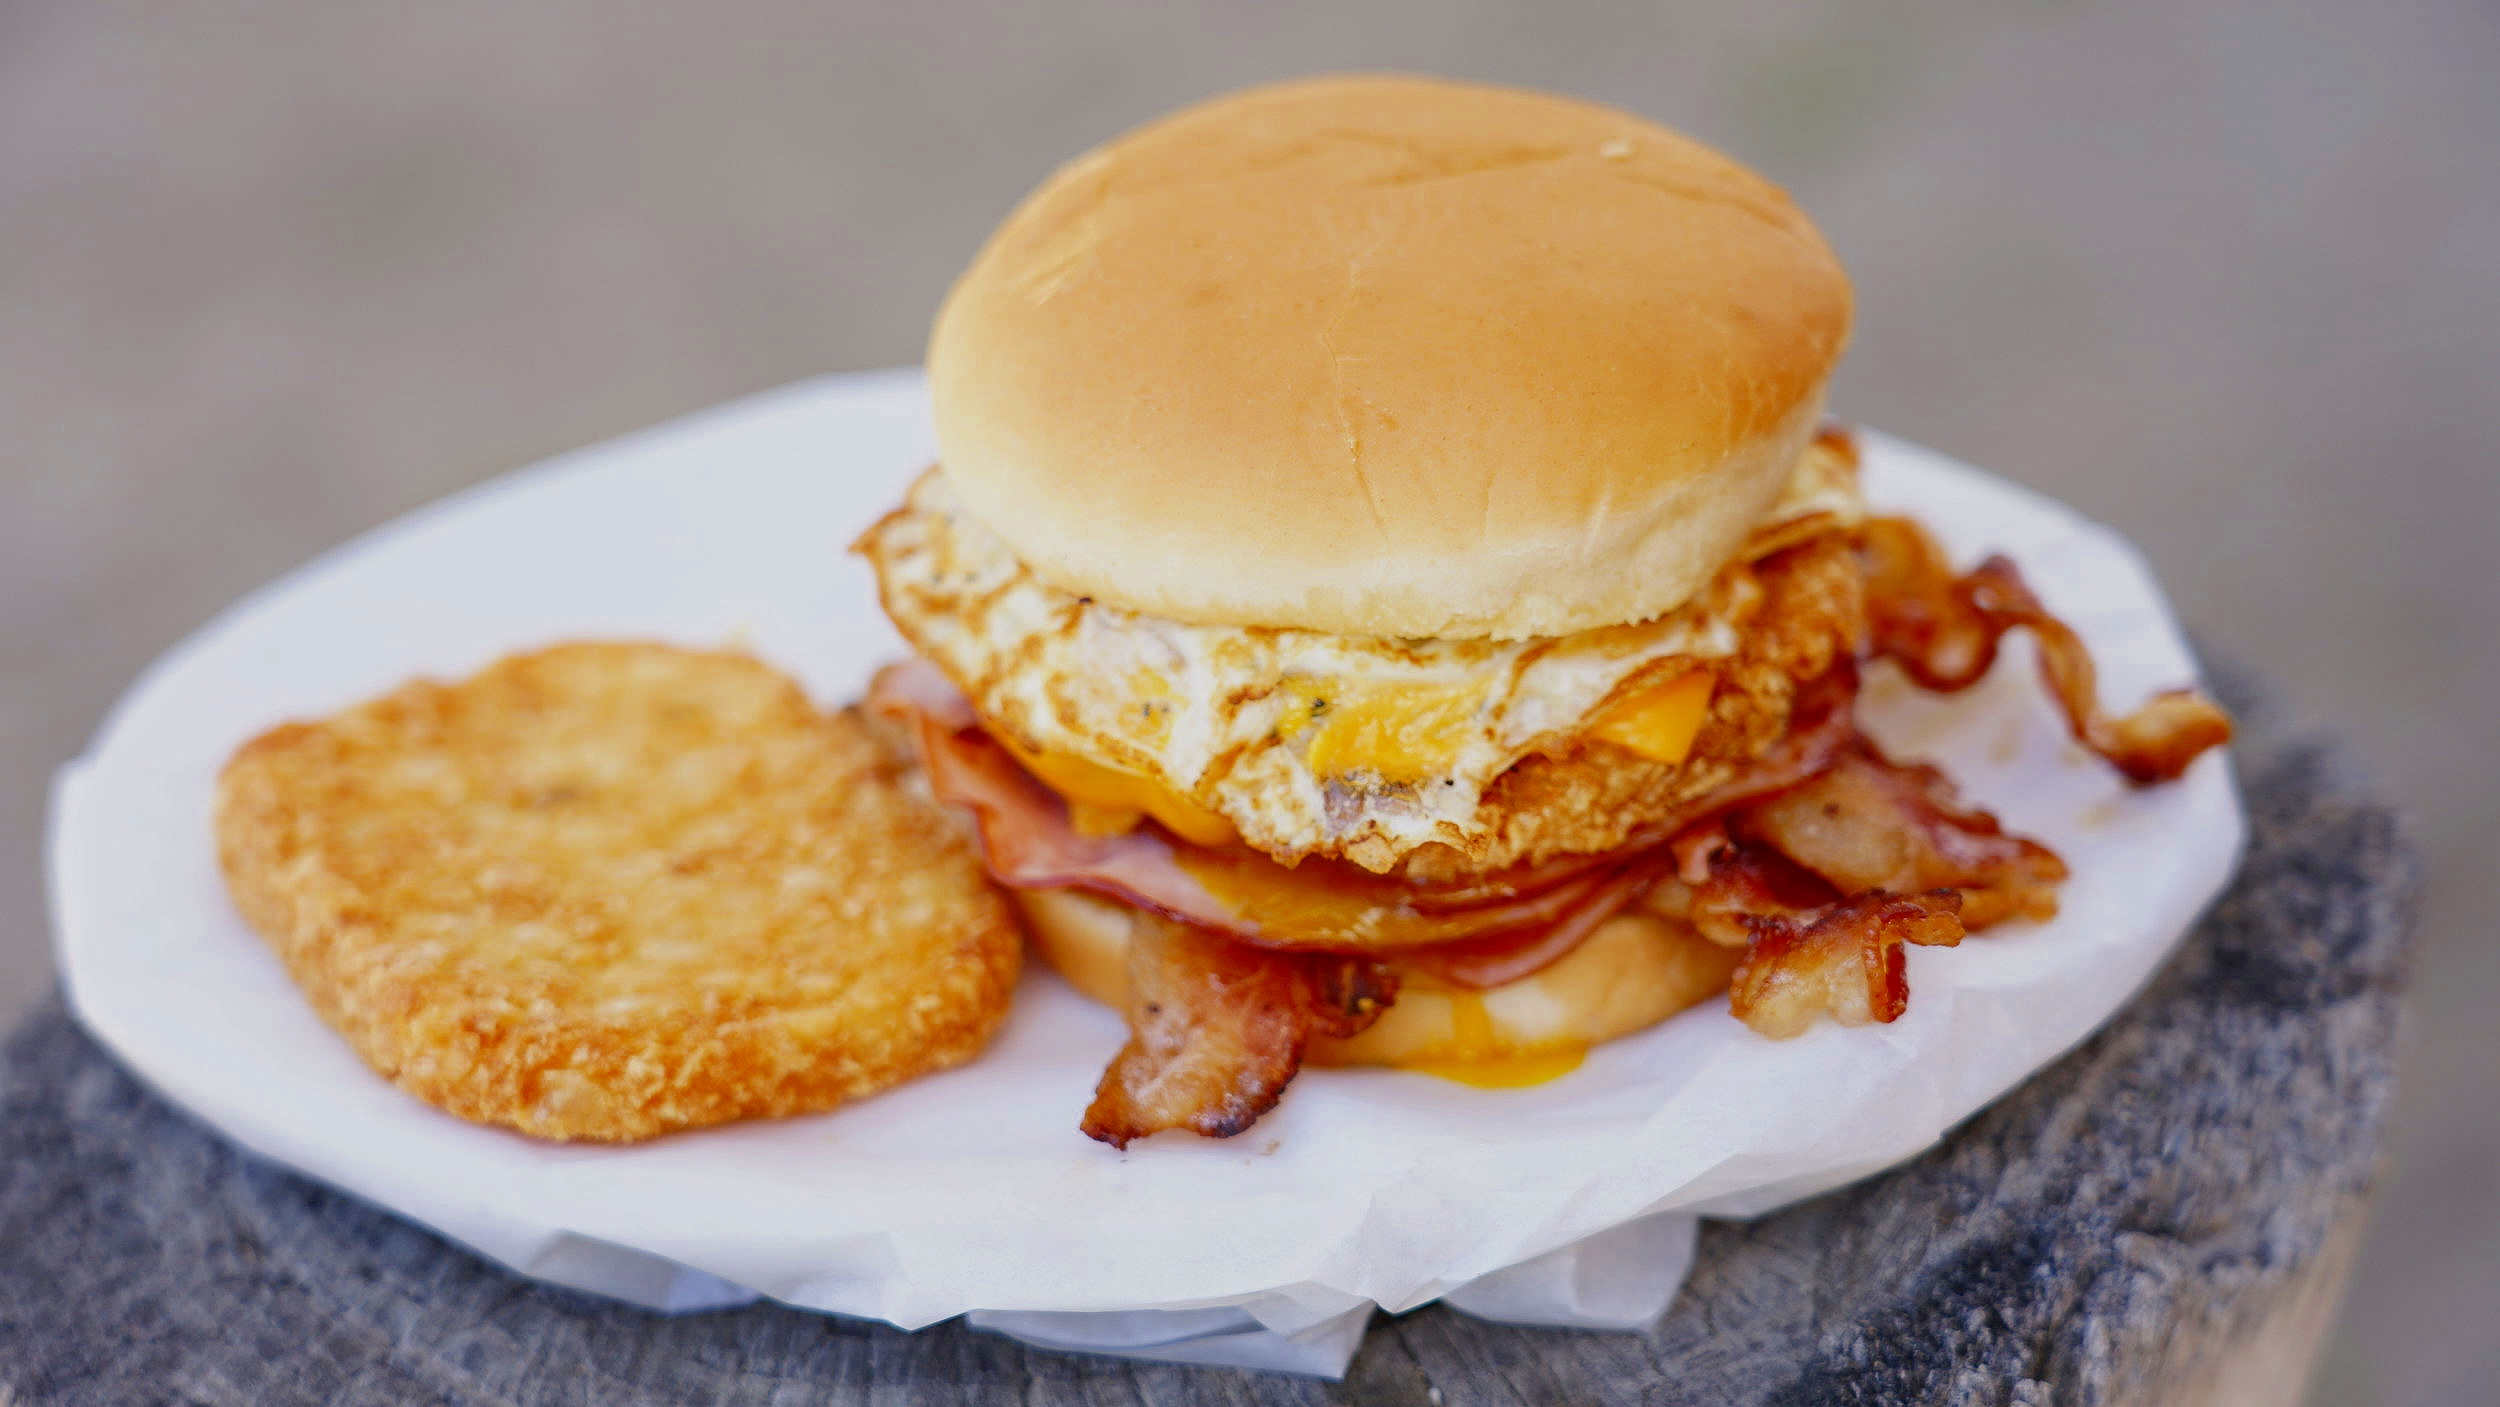 Breakfast Sandwiches - Breakfast Sandwiches served till 12:00 noon.Bacon, egg and cheese.....$4.00Ham, egg and cheese.......$3.25Bacon, ham, egg and cheese.....$4.25Add ons: $.30 for extra cheeseAdd ons: $1.50 extra bacon or ham